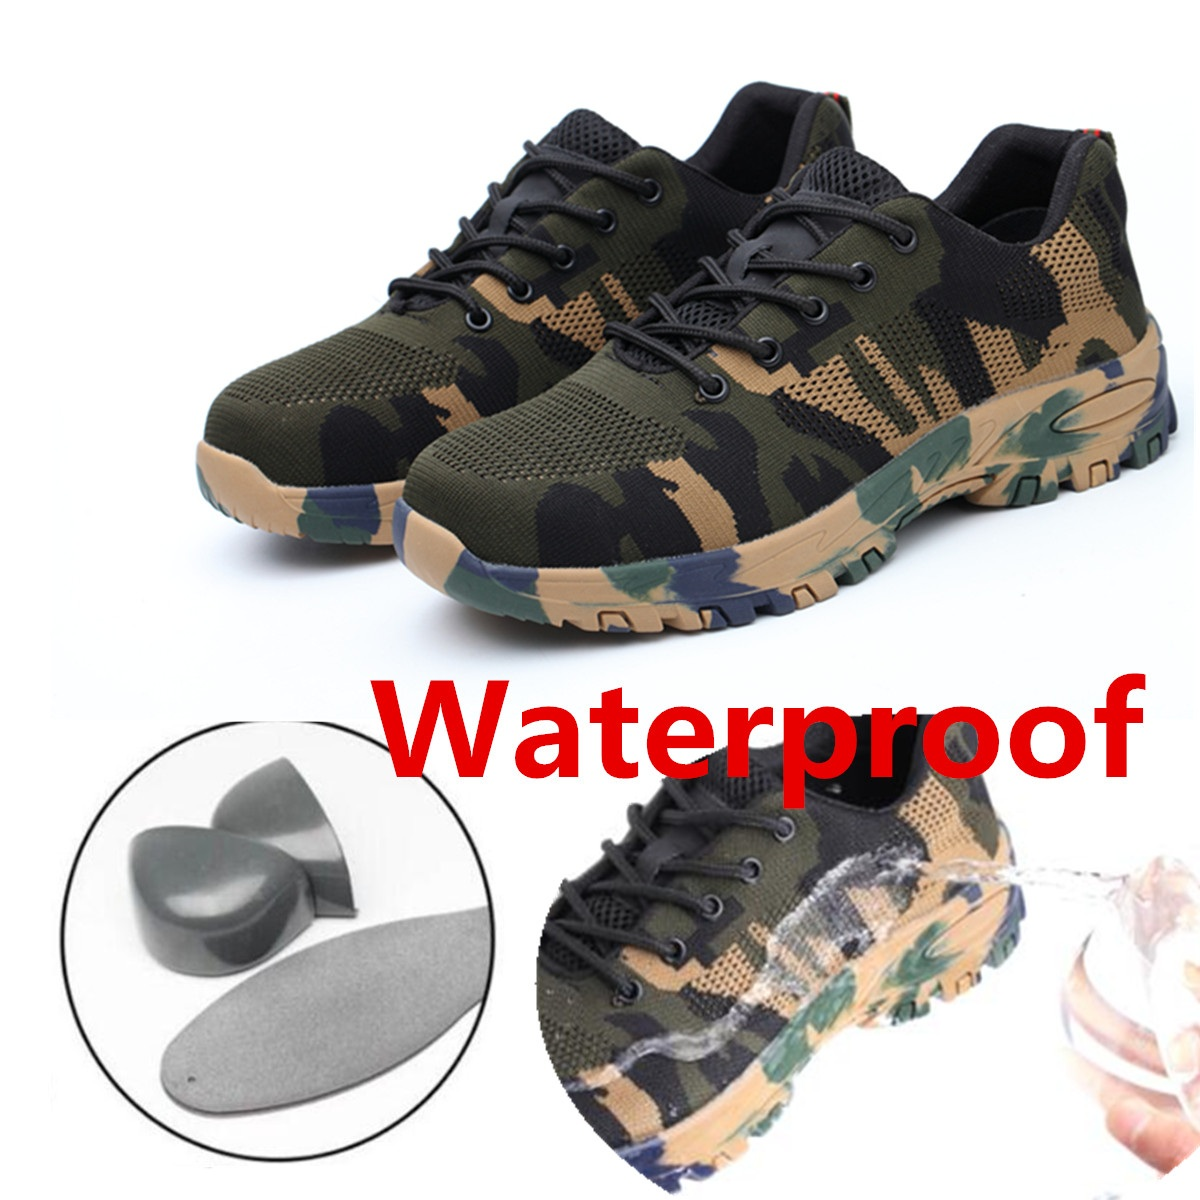 TENGOO Safety Shoes Labor Insurance Shoes Steel Toe Waterproof Anti-Smashing Non-Slip Outdoor Hiking Work Shoes